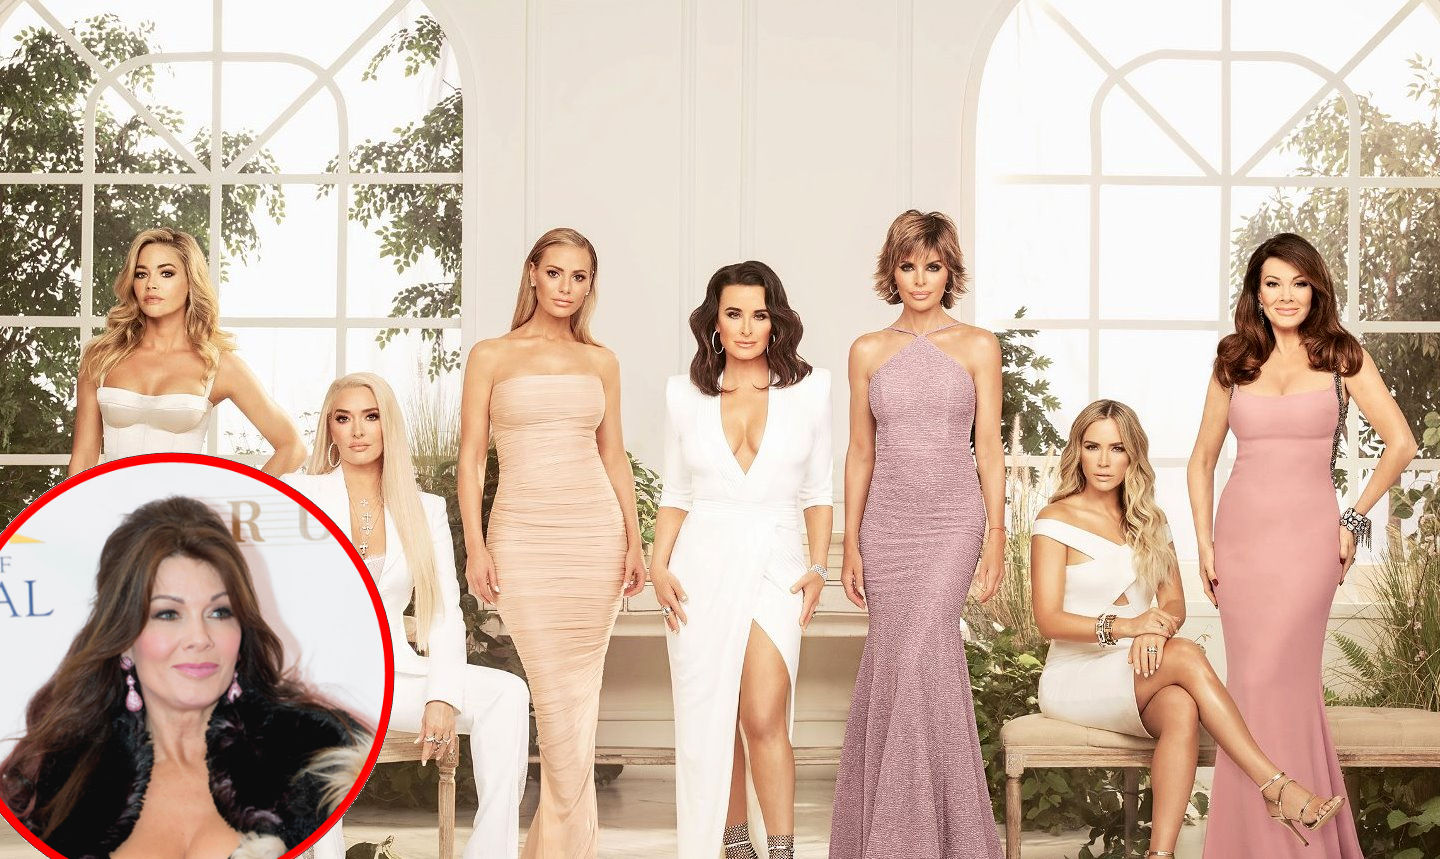 REPORT: The RHOBH Cast Is Willing To Make Amends With Lisa Vanderpump Under This One Condition